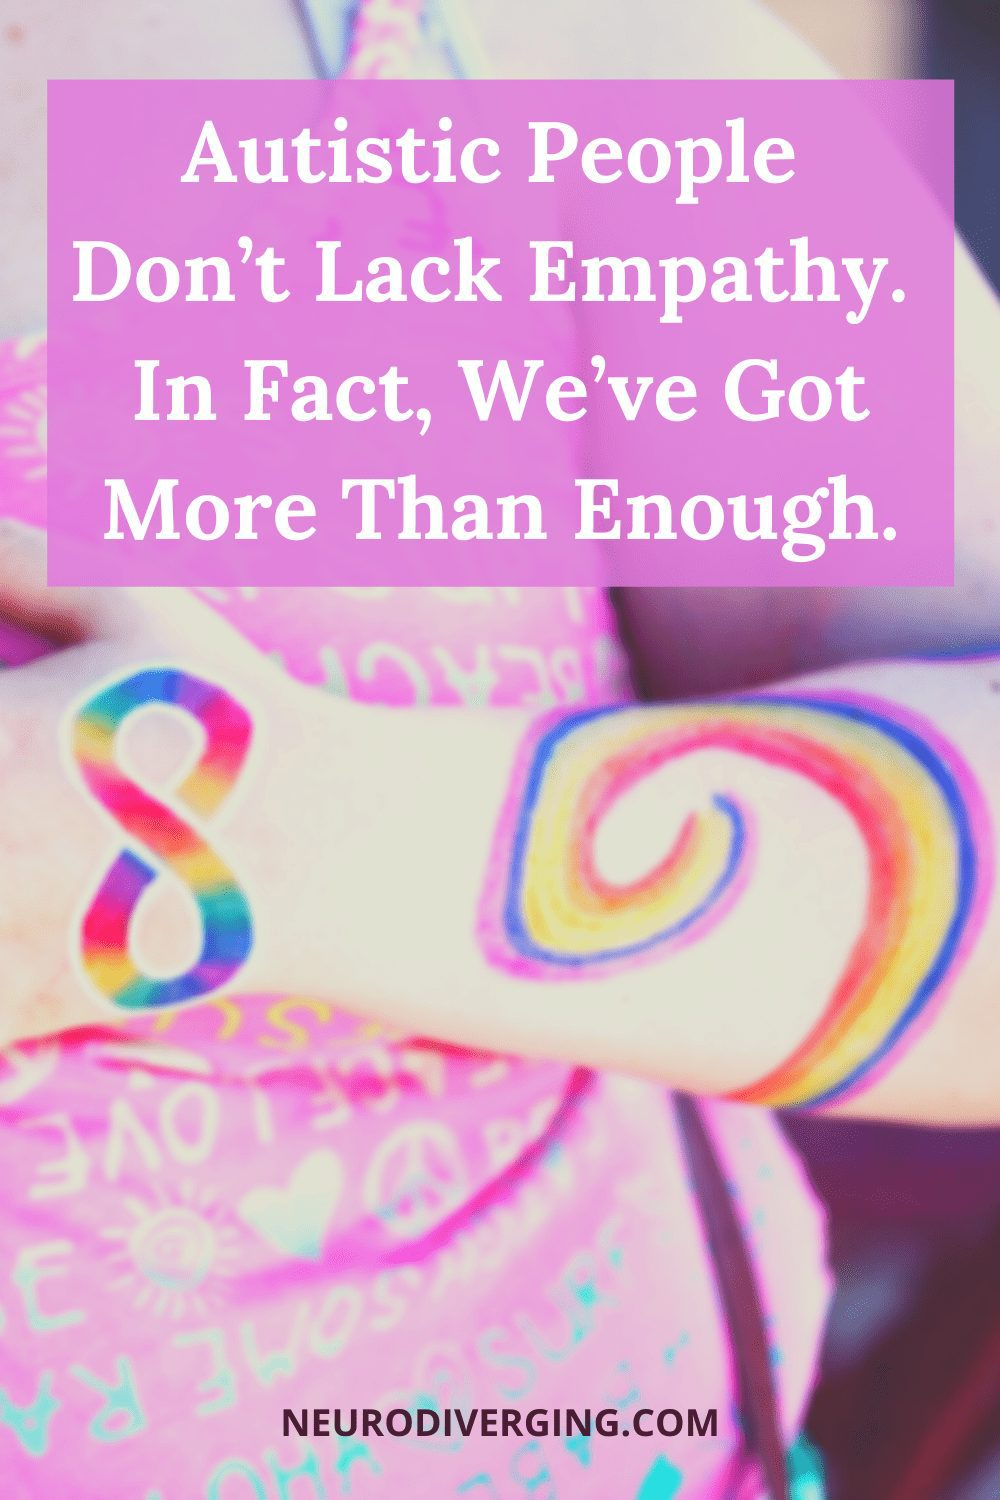 AUTISTIC PEOPLE DON'T LACK EMPATHY